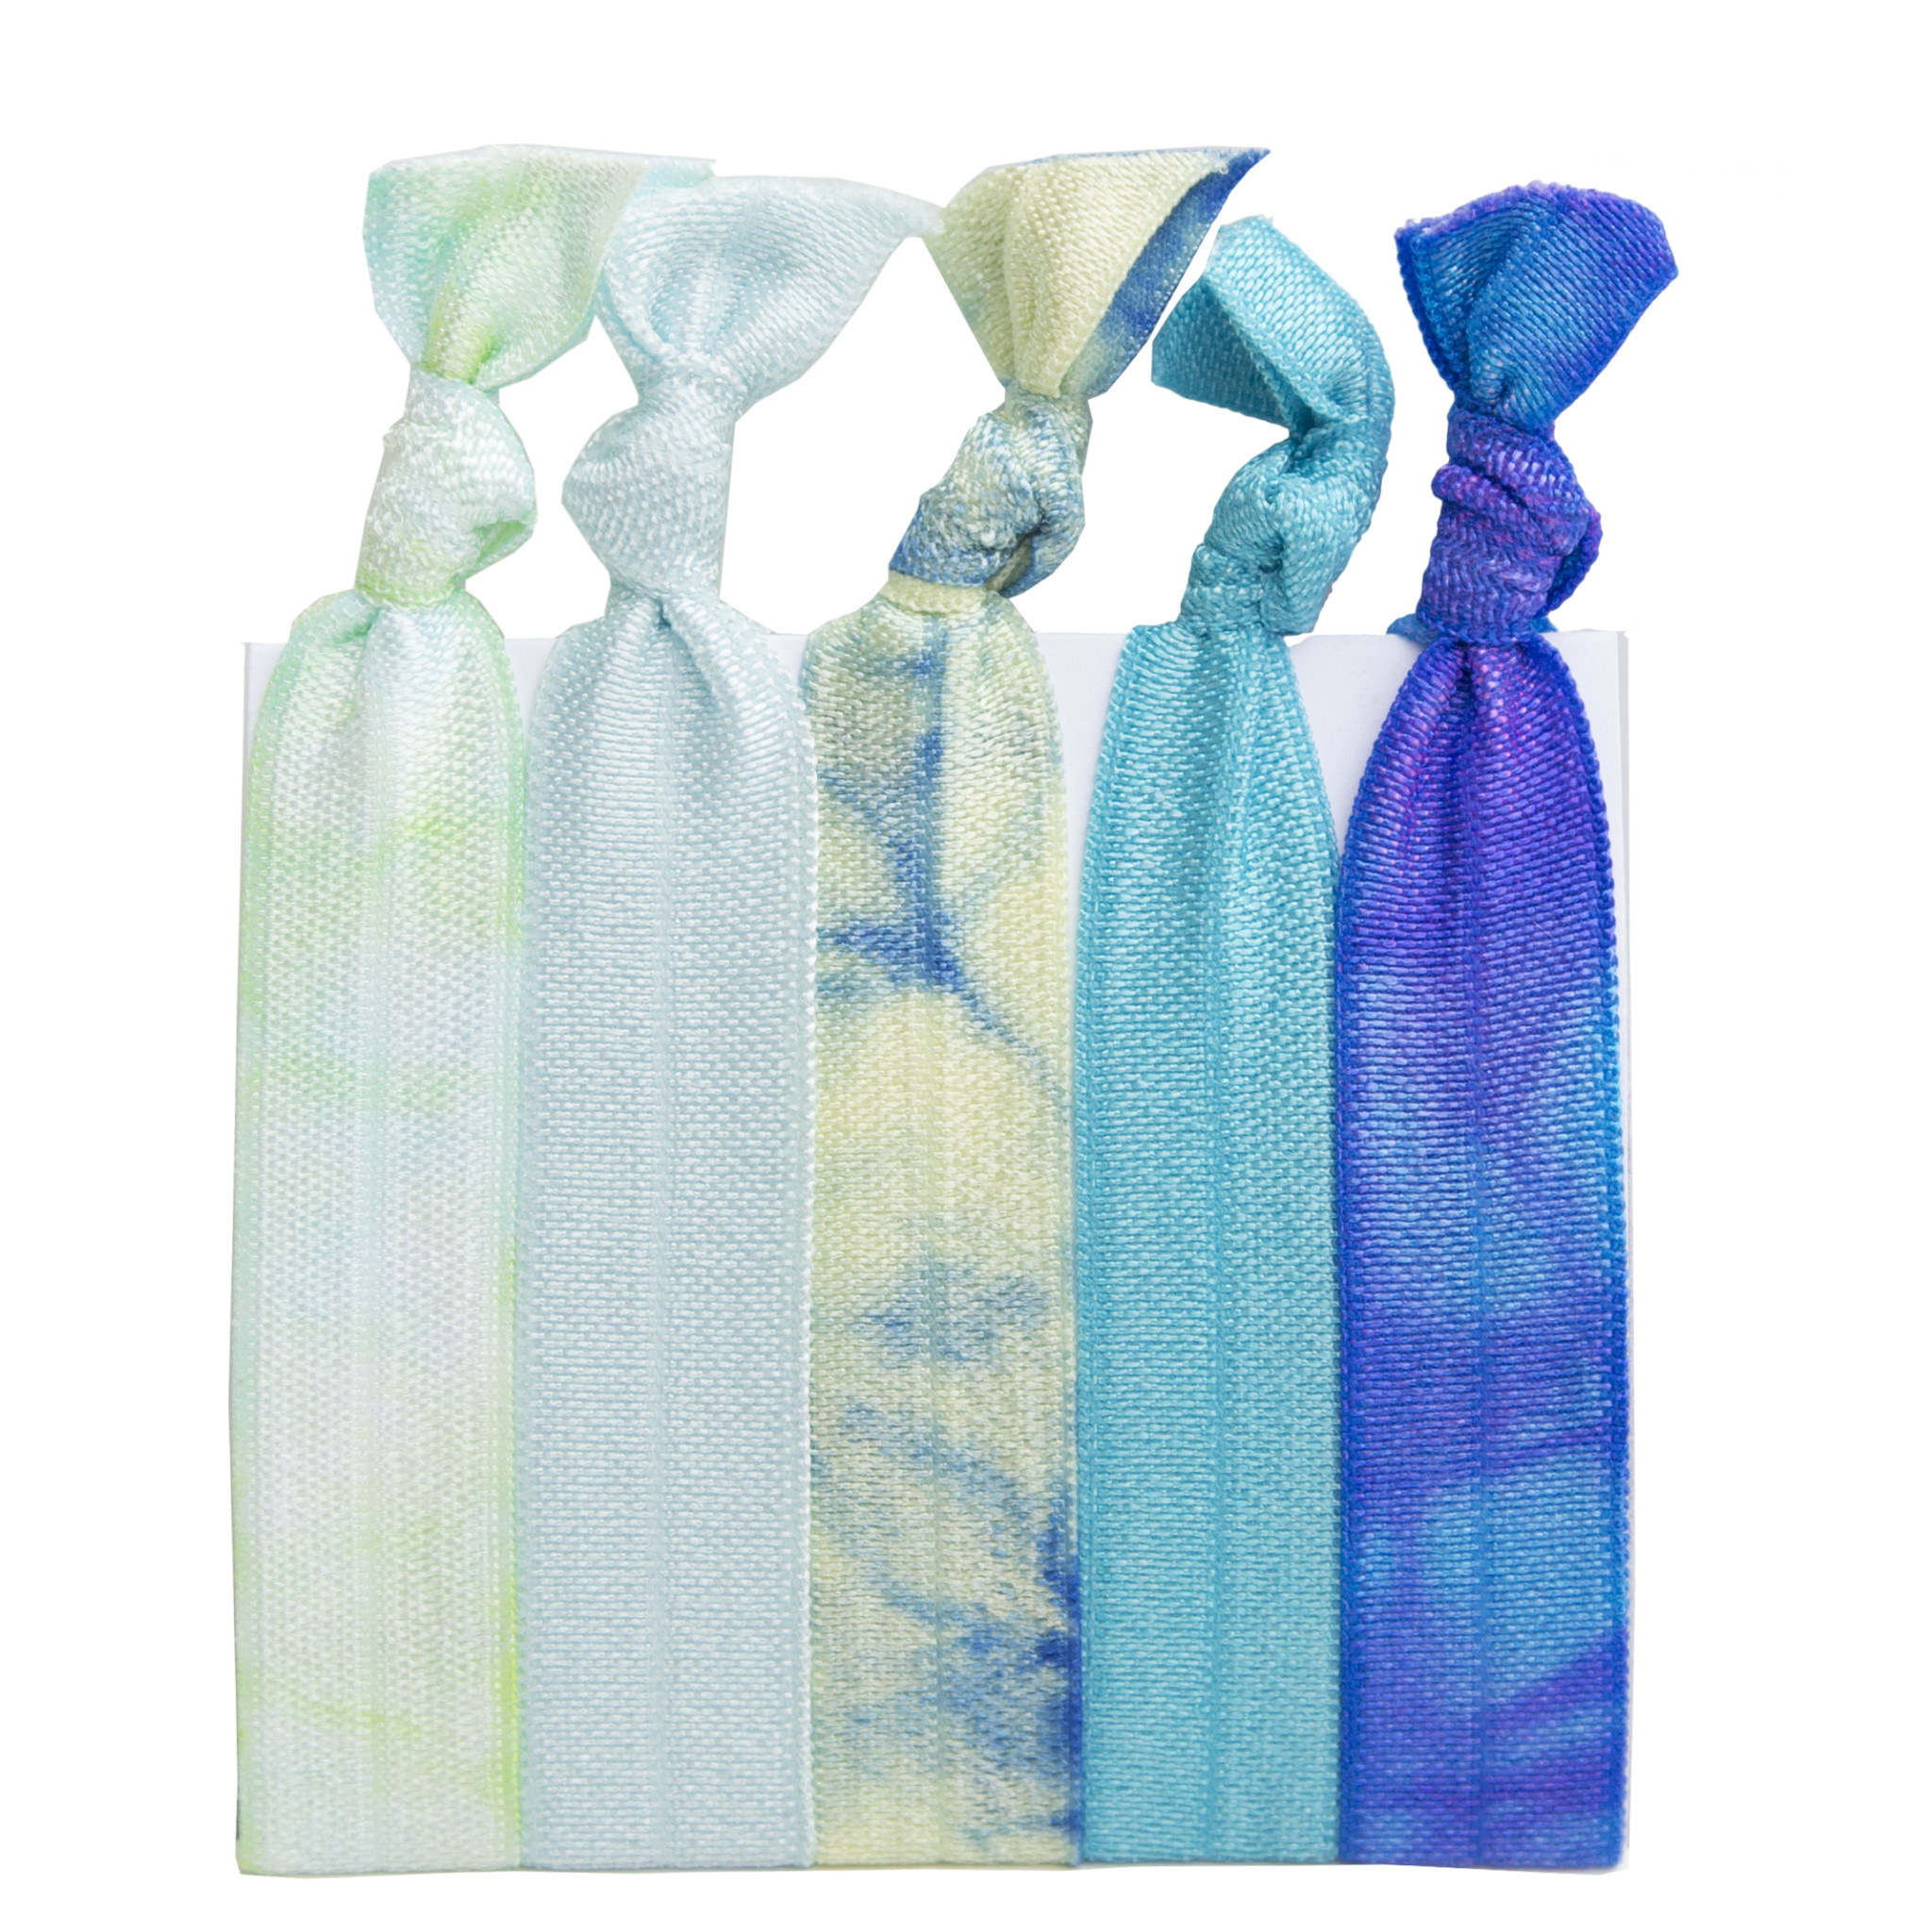 Daytrip Society Hair Ties Set of 5 - Under the Sea